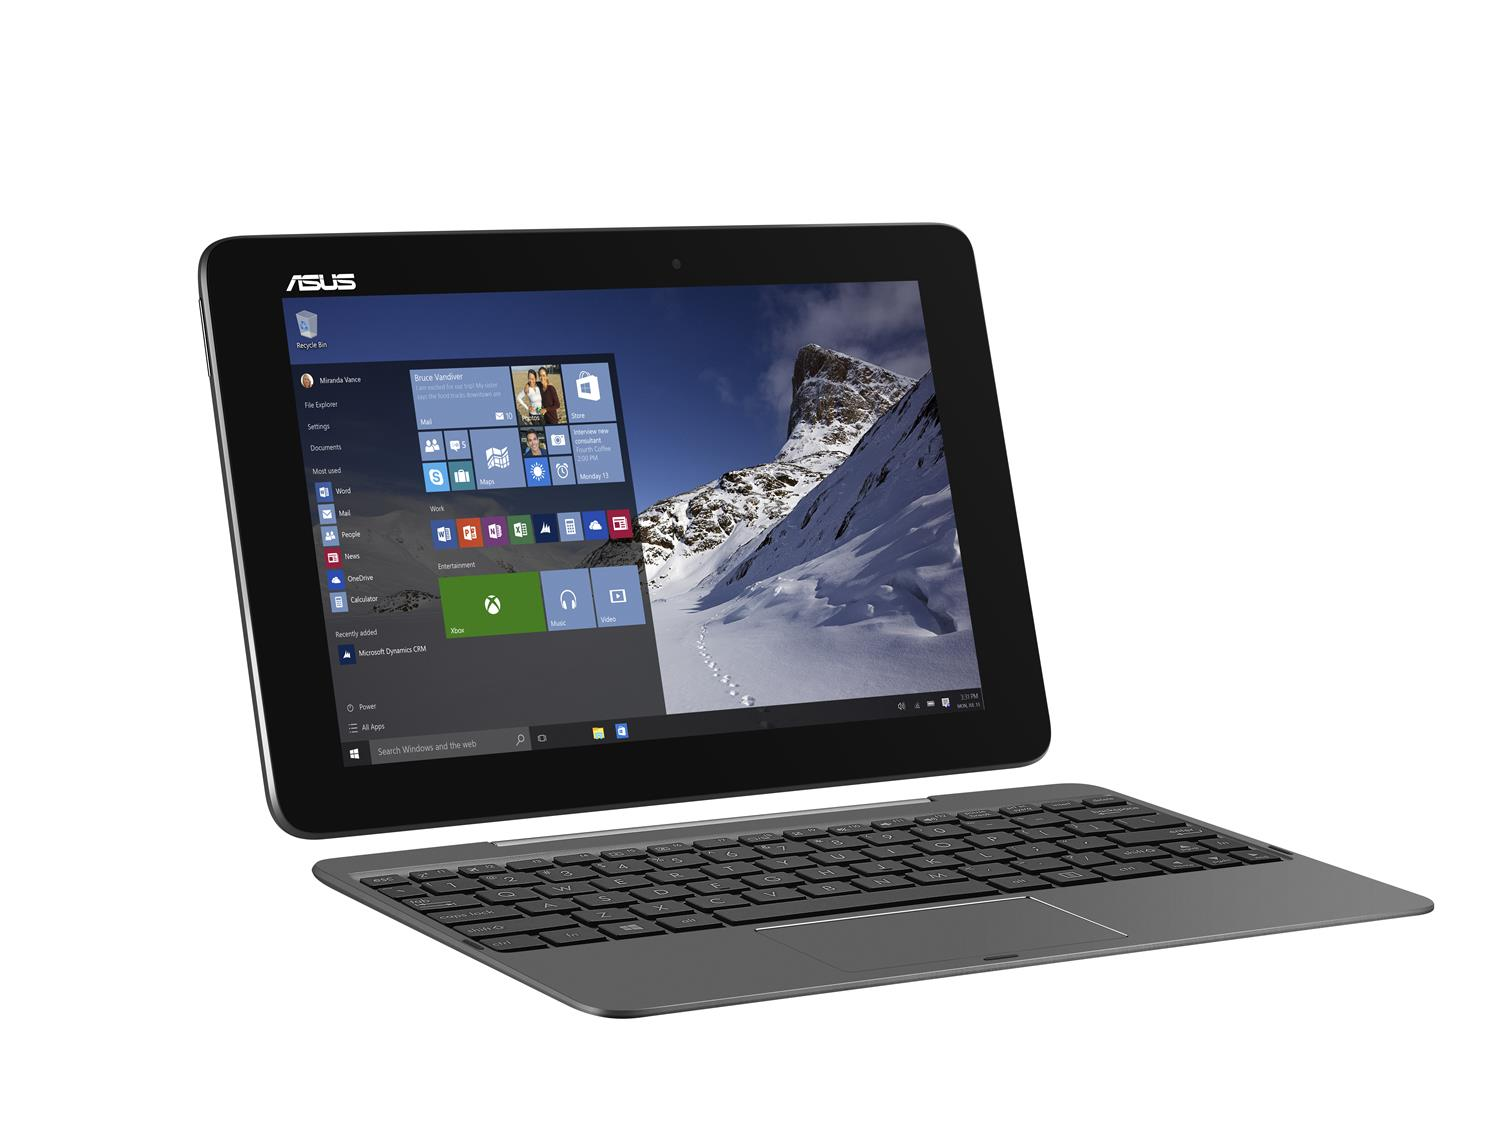 ASUS T100HA 10.1T/Z8500/64GB/4G/Win 10